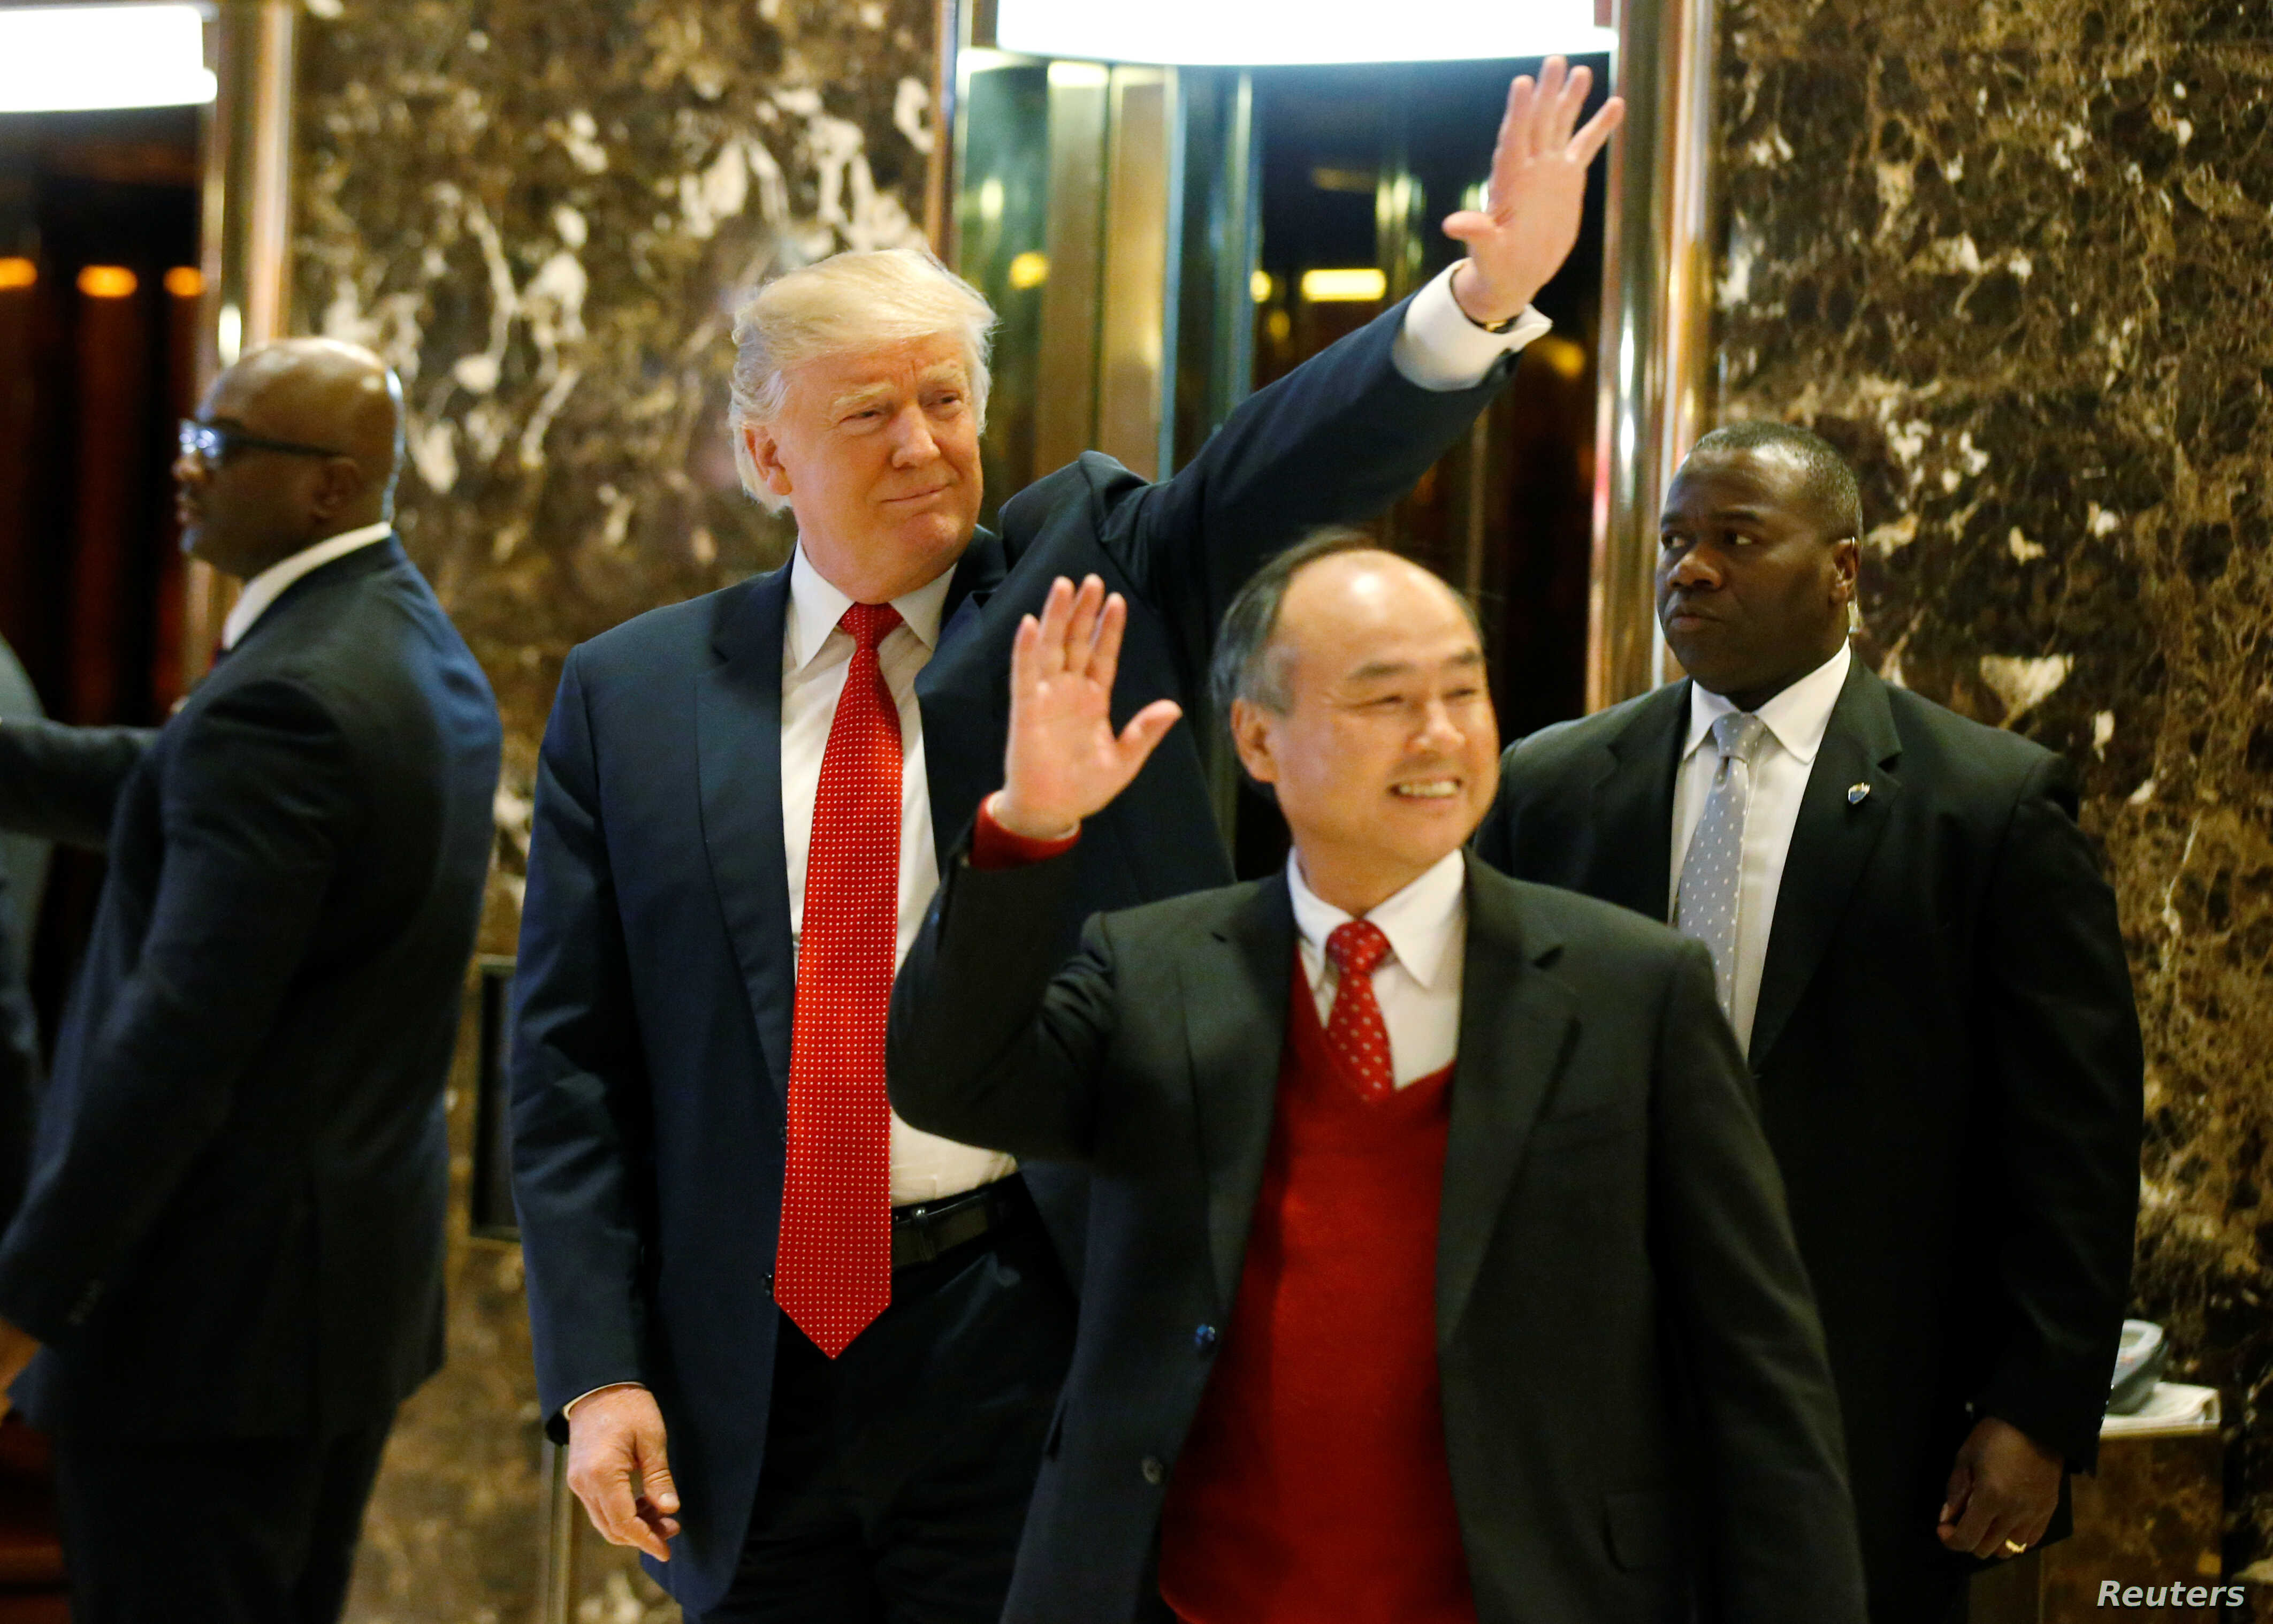 U.S. President-elect Donald Trump and Softbank CEO Masayoshi Son acknowledge guests after meeting at Trump Tower in Manhattan, New York City, Dec. 6, 2016.